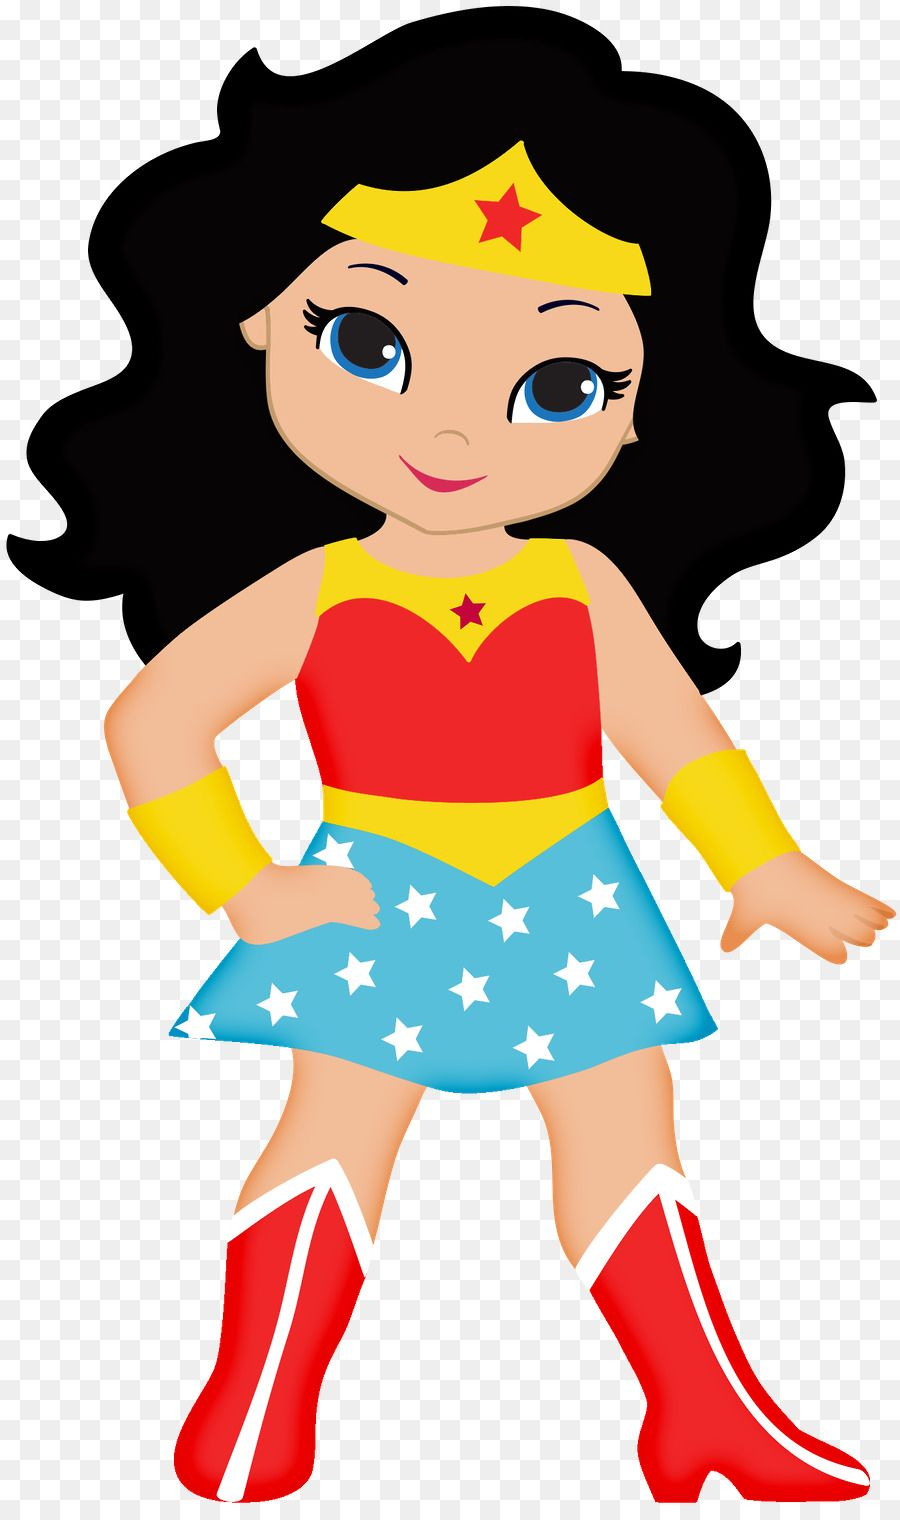 Wonder woman she can do it clipart graphic library library Diana Prince Superman Batman Superwoman Clip art - Women ... graphic library library